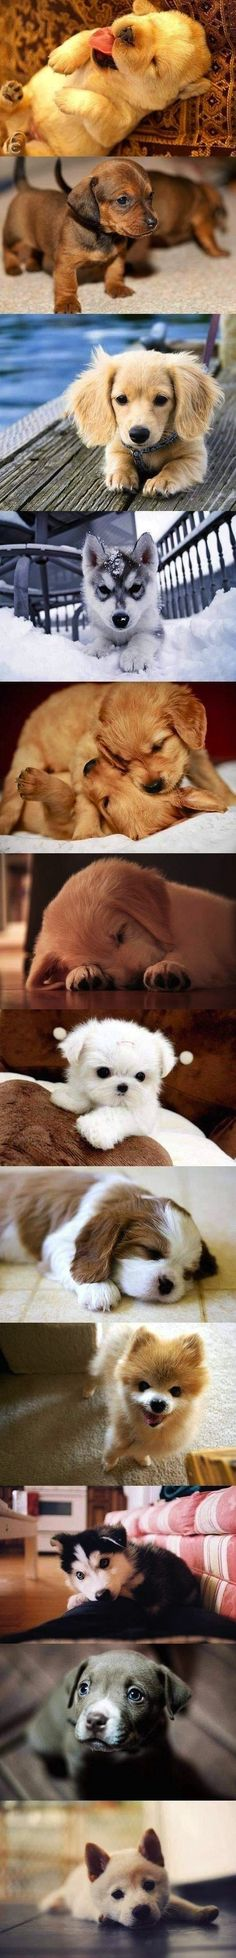 aww....puppies